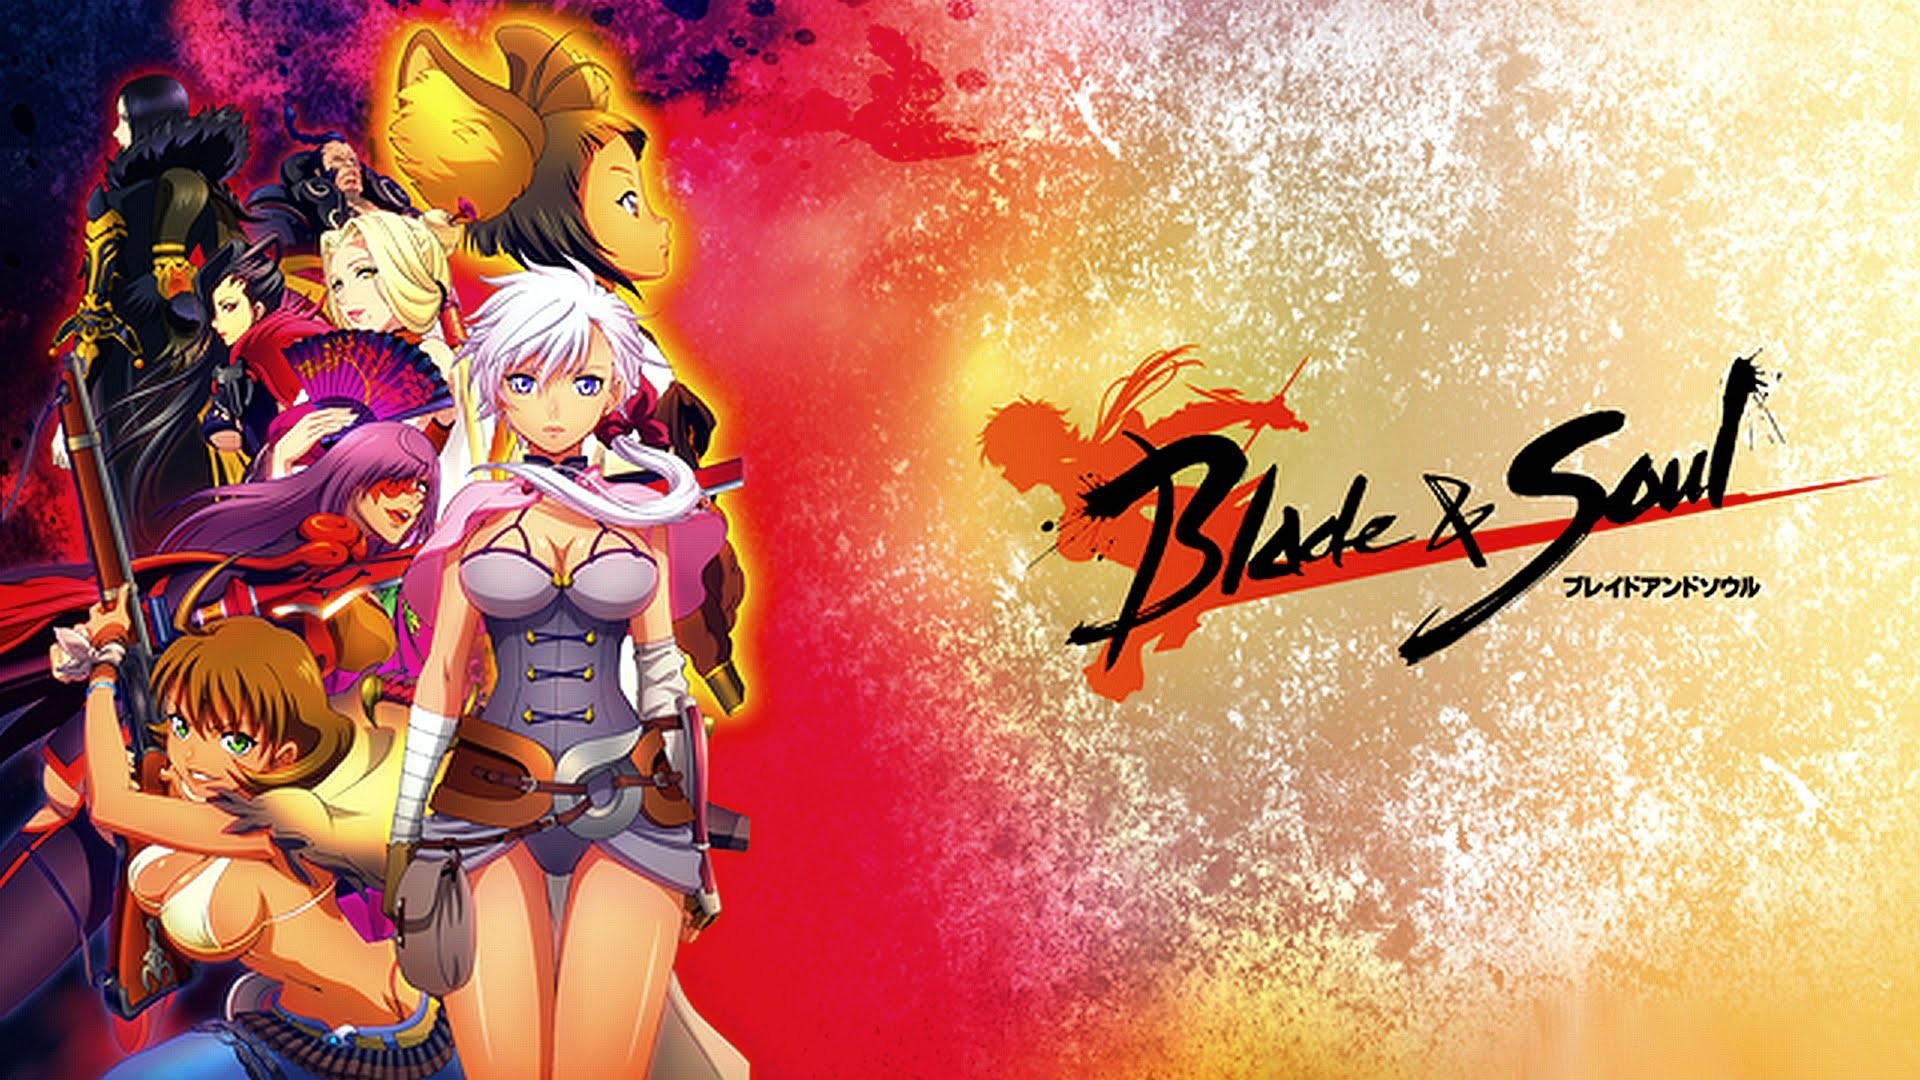 Blade And Soul Anime Wallpaper Hd 76 Images